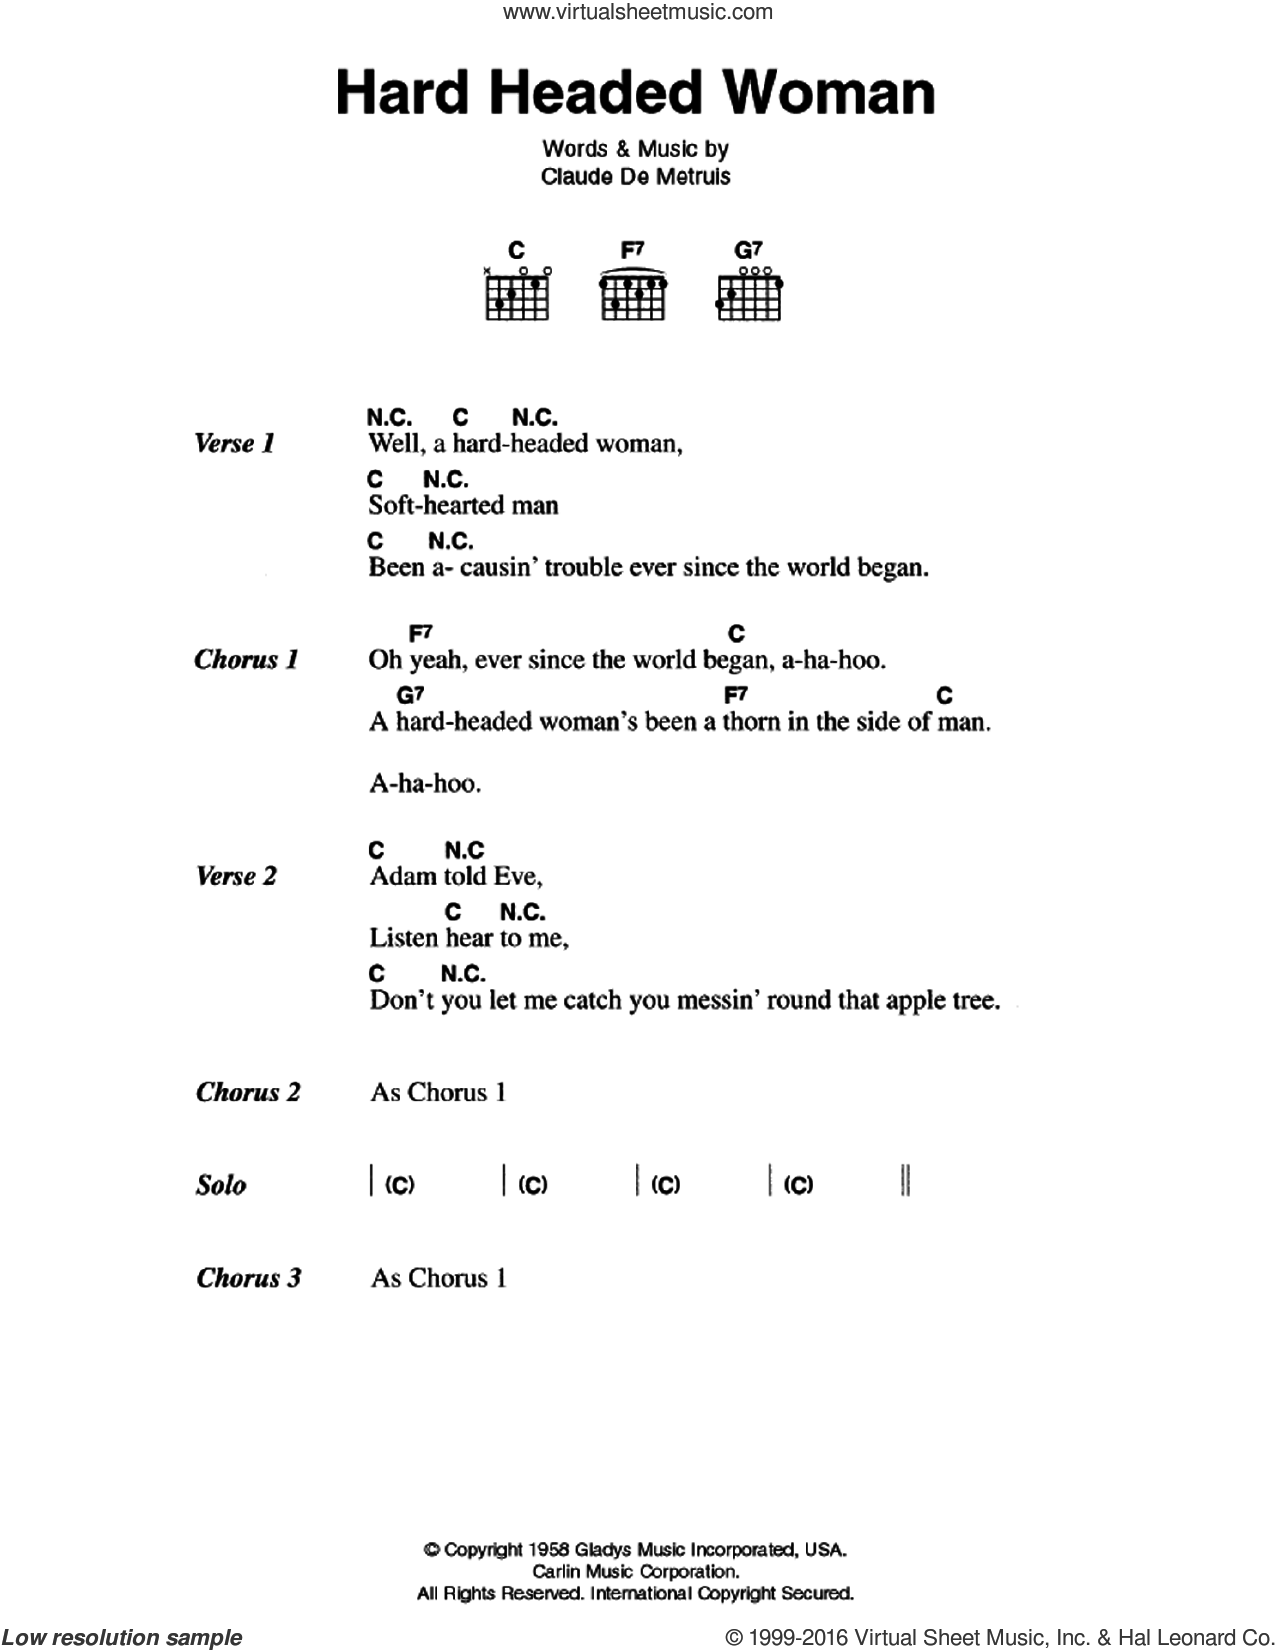 Hard Headed Woman sheet music for guitar (chords) by Elvis Presley and Claude DeMetruis, intermediate skill level